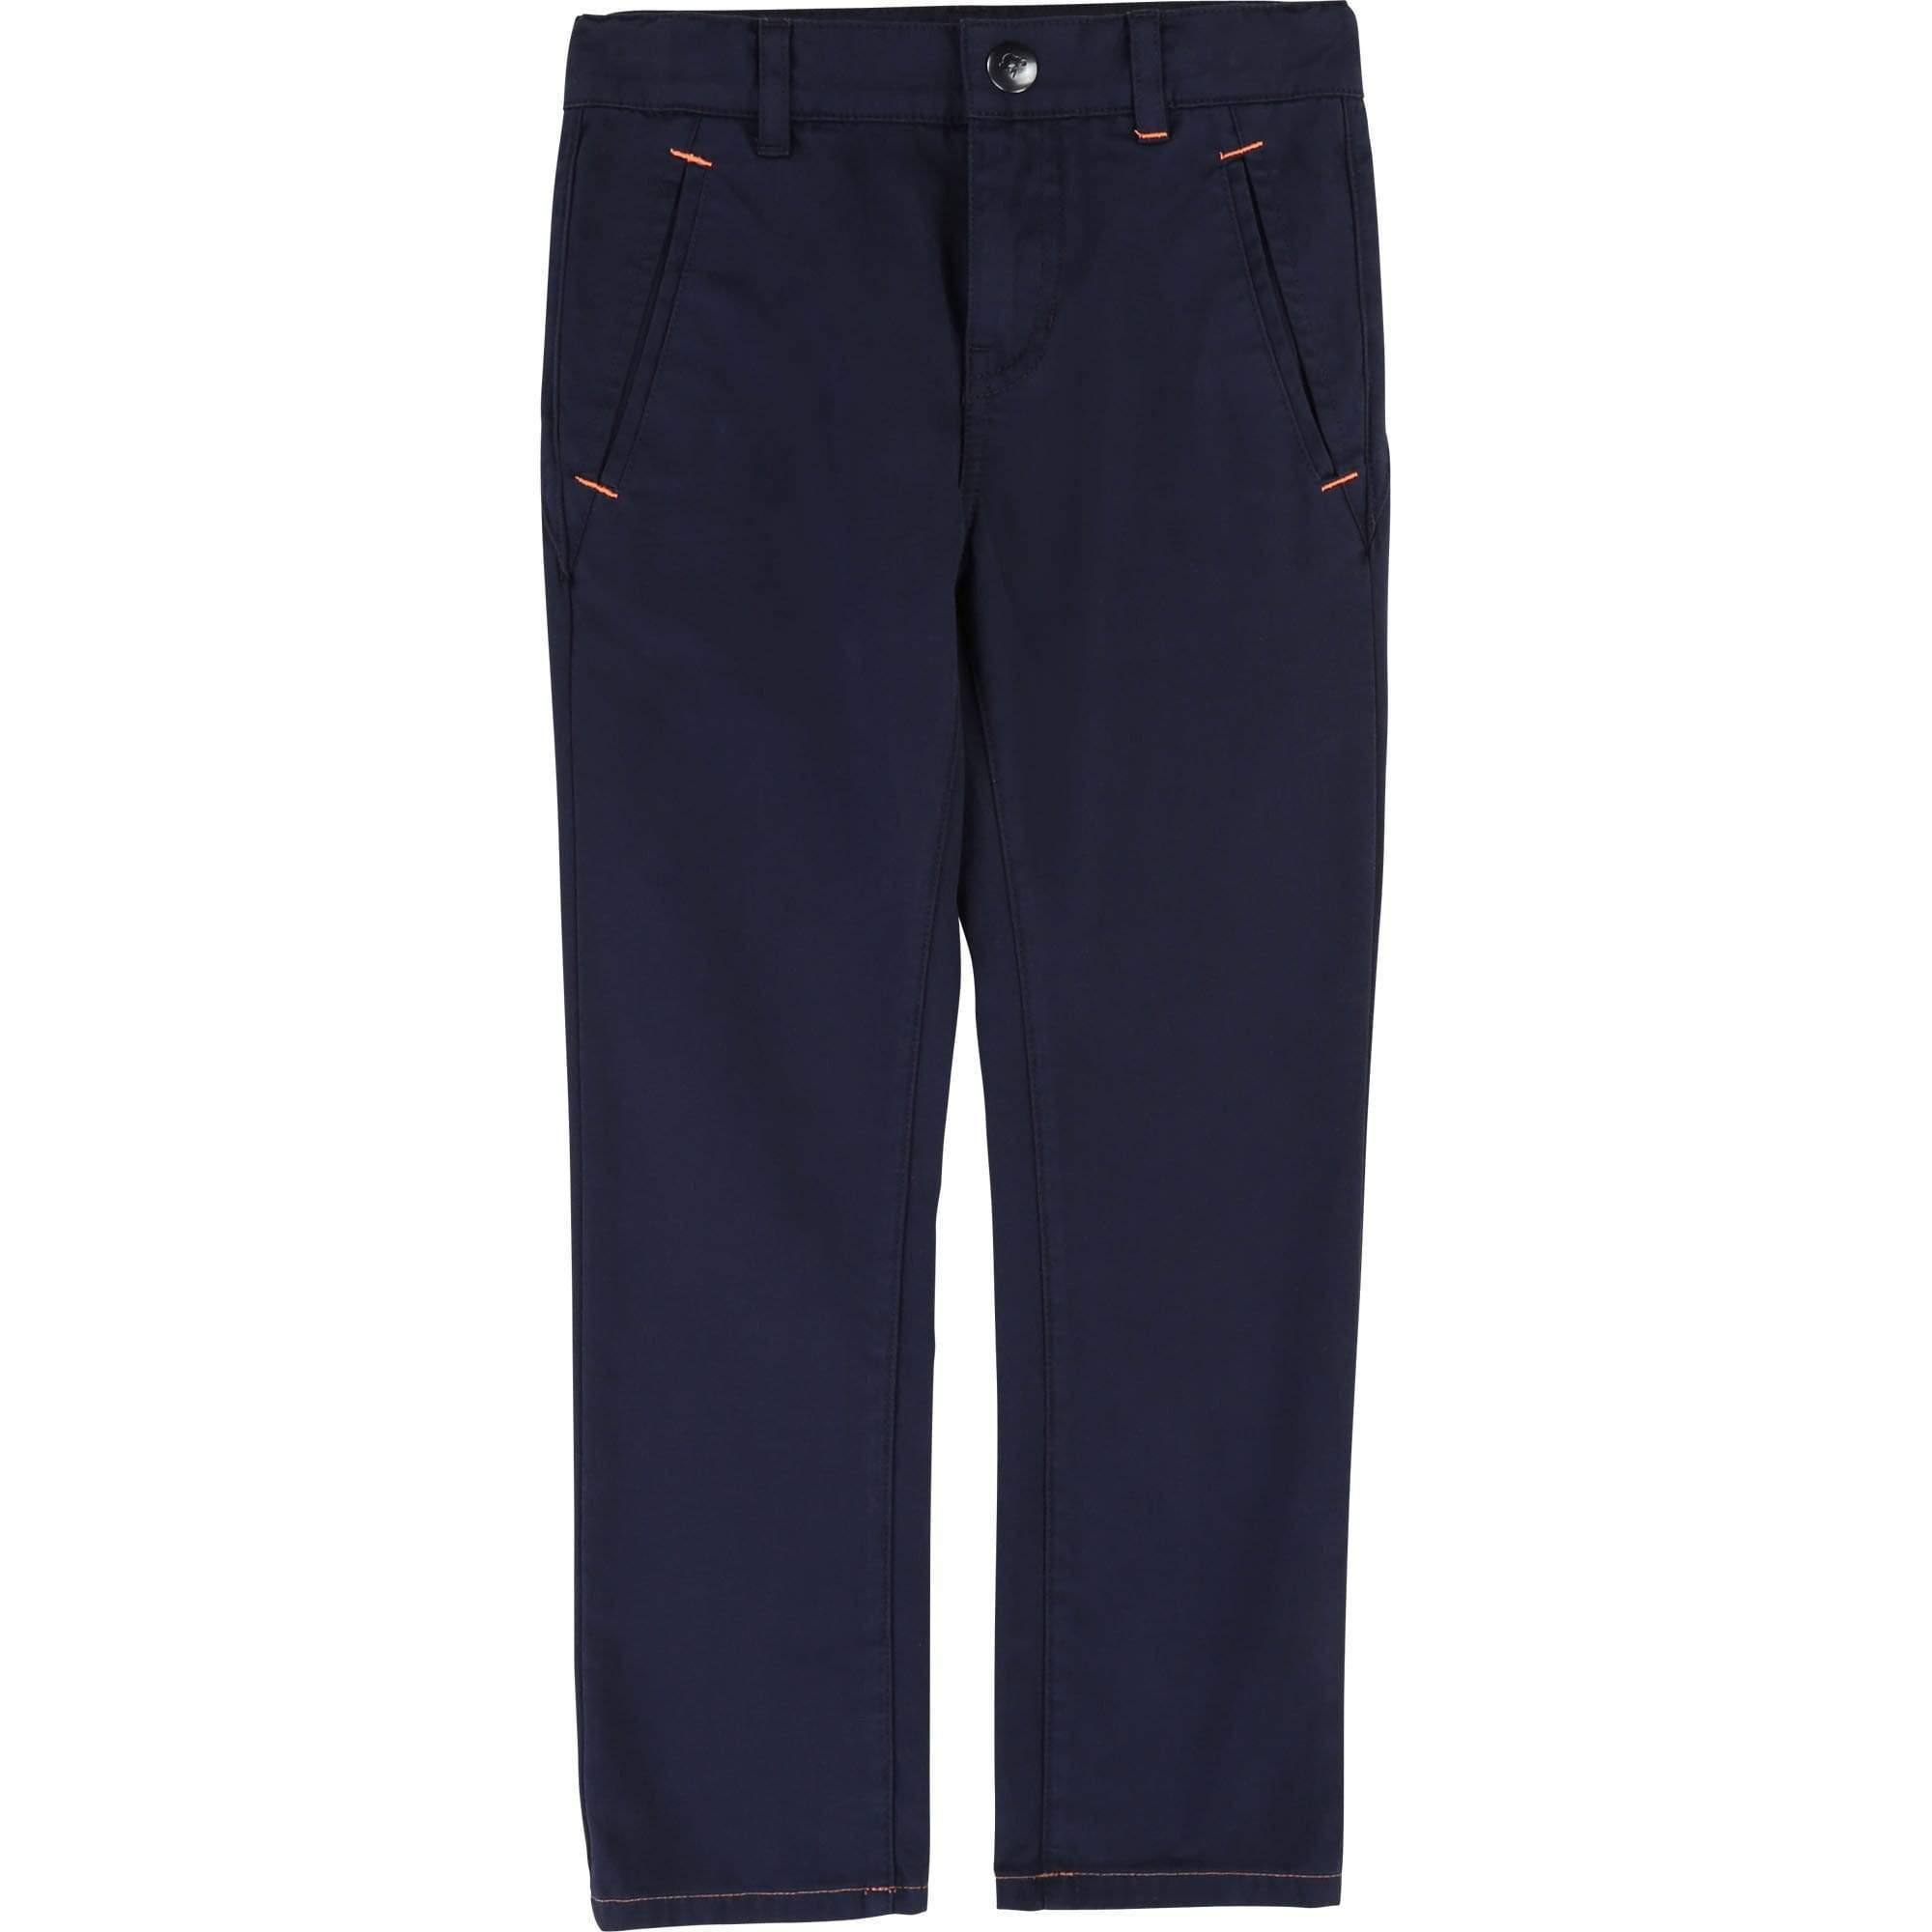 Billybandit Boys Cotton Navy Blue Chino Trousers